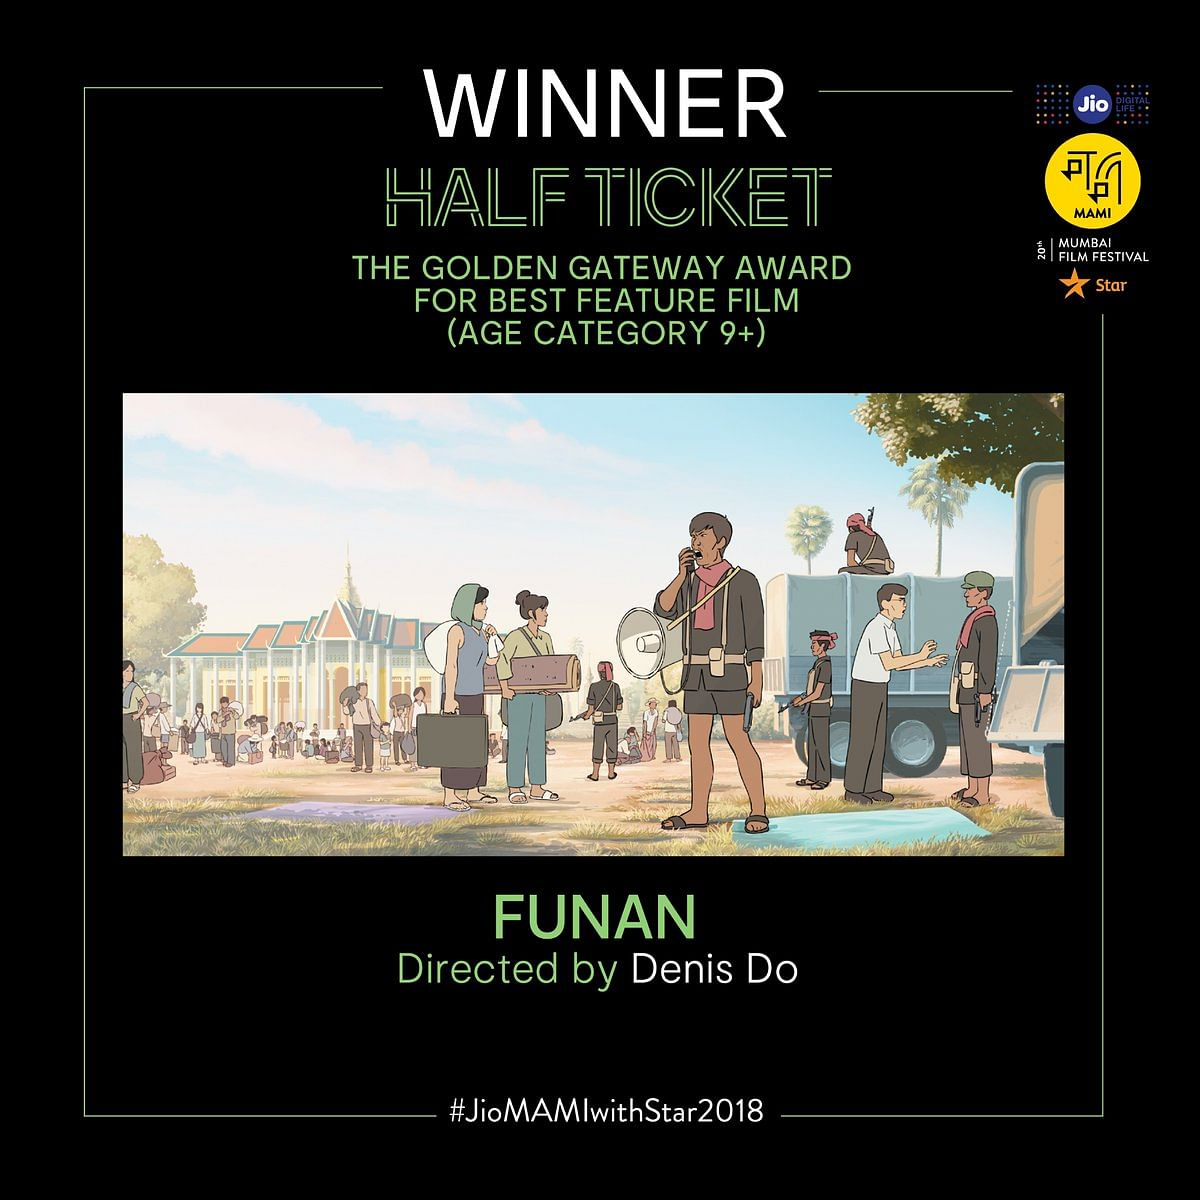 Here Are the Top Winners of MAMI 2018